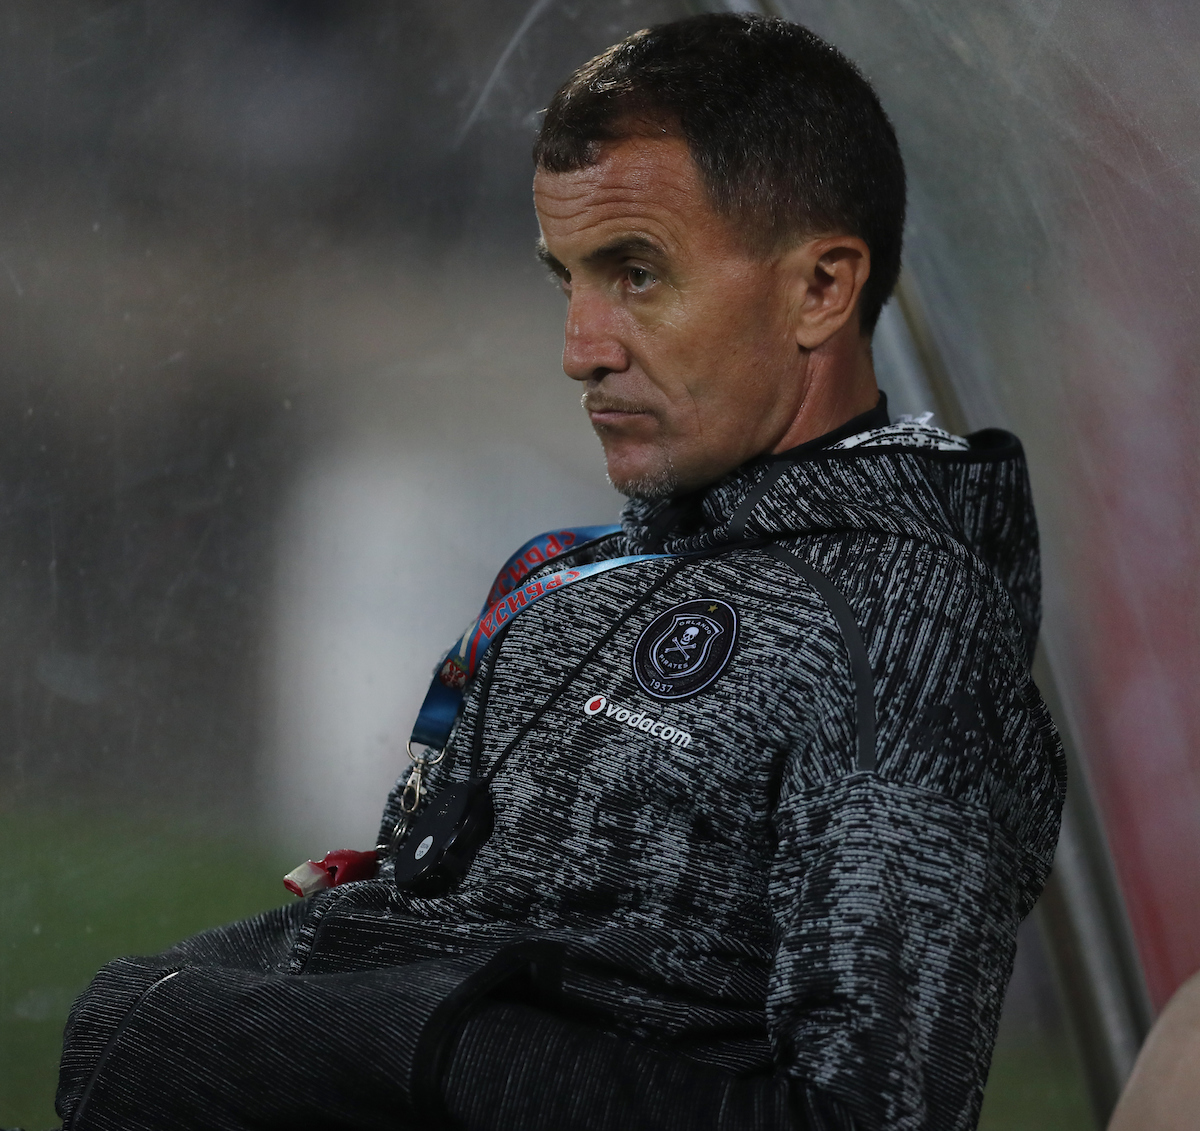 Orlando Pirates coach Milutin 'Micho' Sredojevic